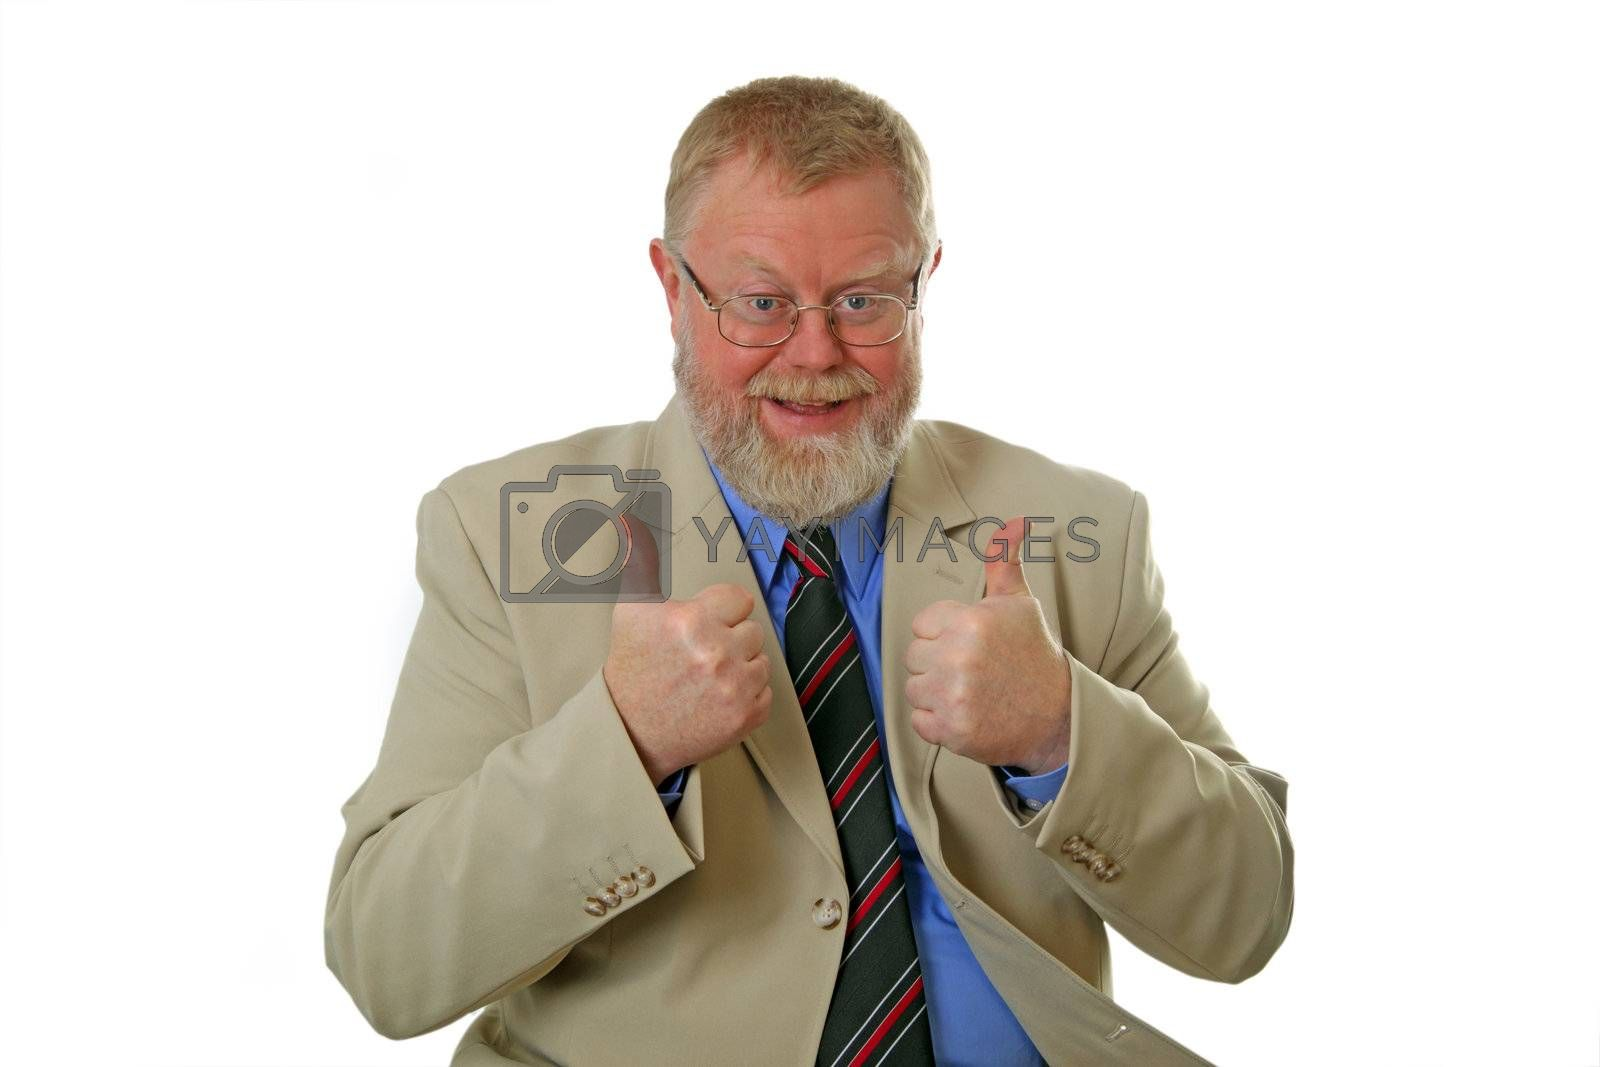 Thumbs up business man on white background